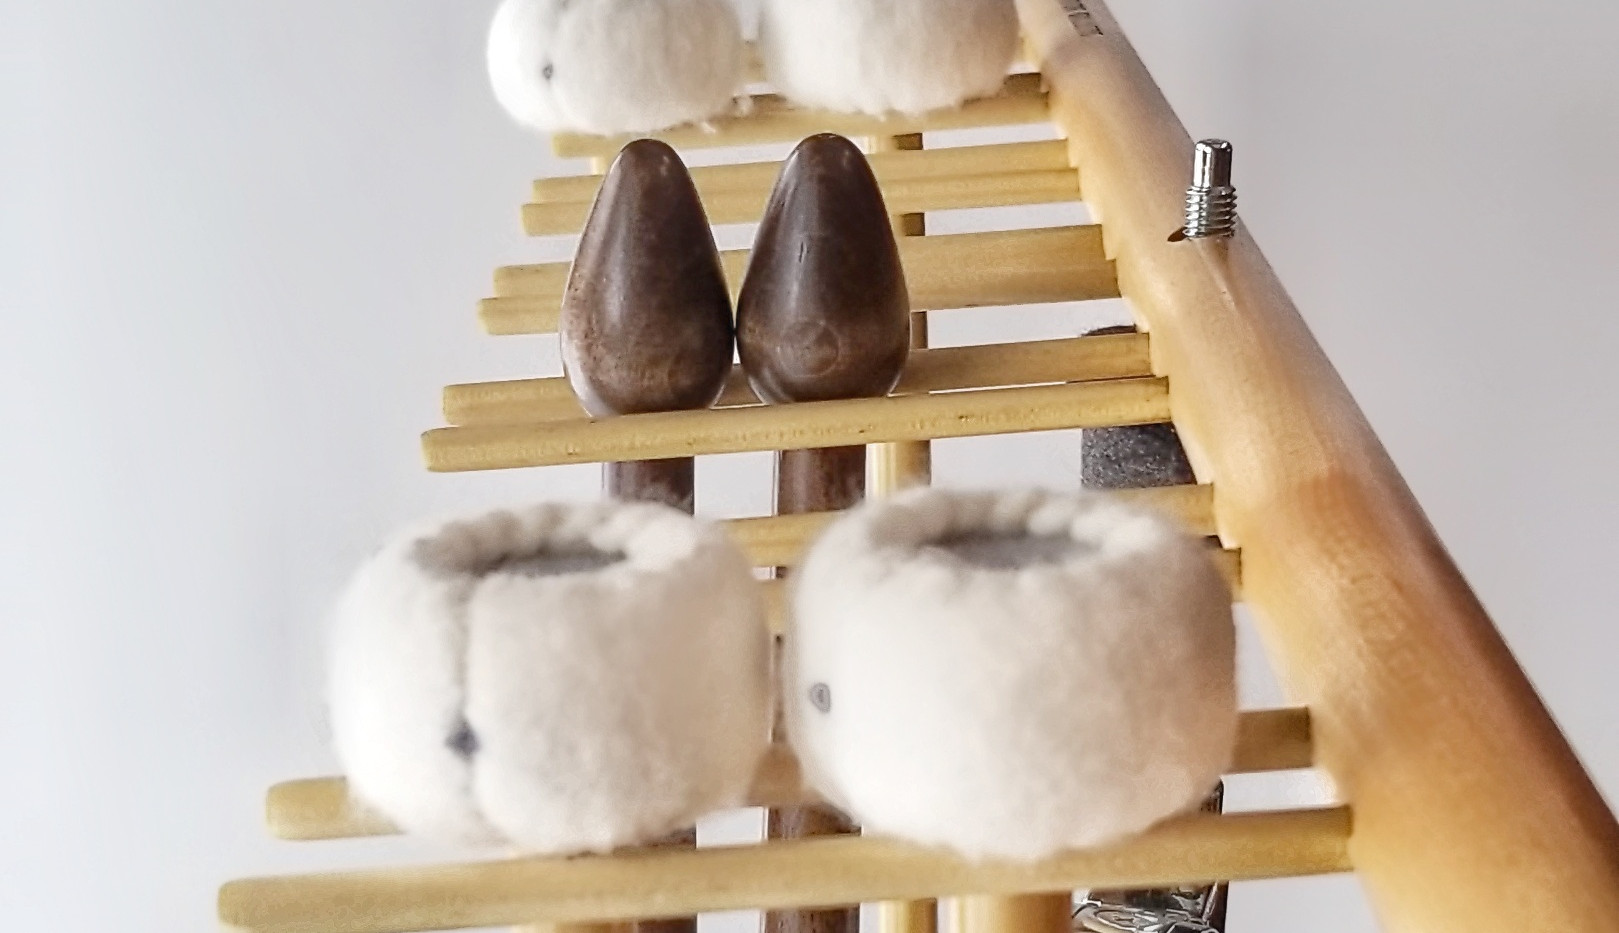 This professional percussion mallet rack is made out of Canadian Maple and is designed to hold up to 8 pairs of mallets (8 slots). This mallet rack is intended to hold timpani mallets and other percussion sticks such as: Marimba mallets, suspended cymbal mallets, and many others.